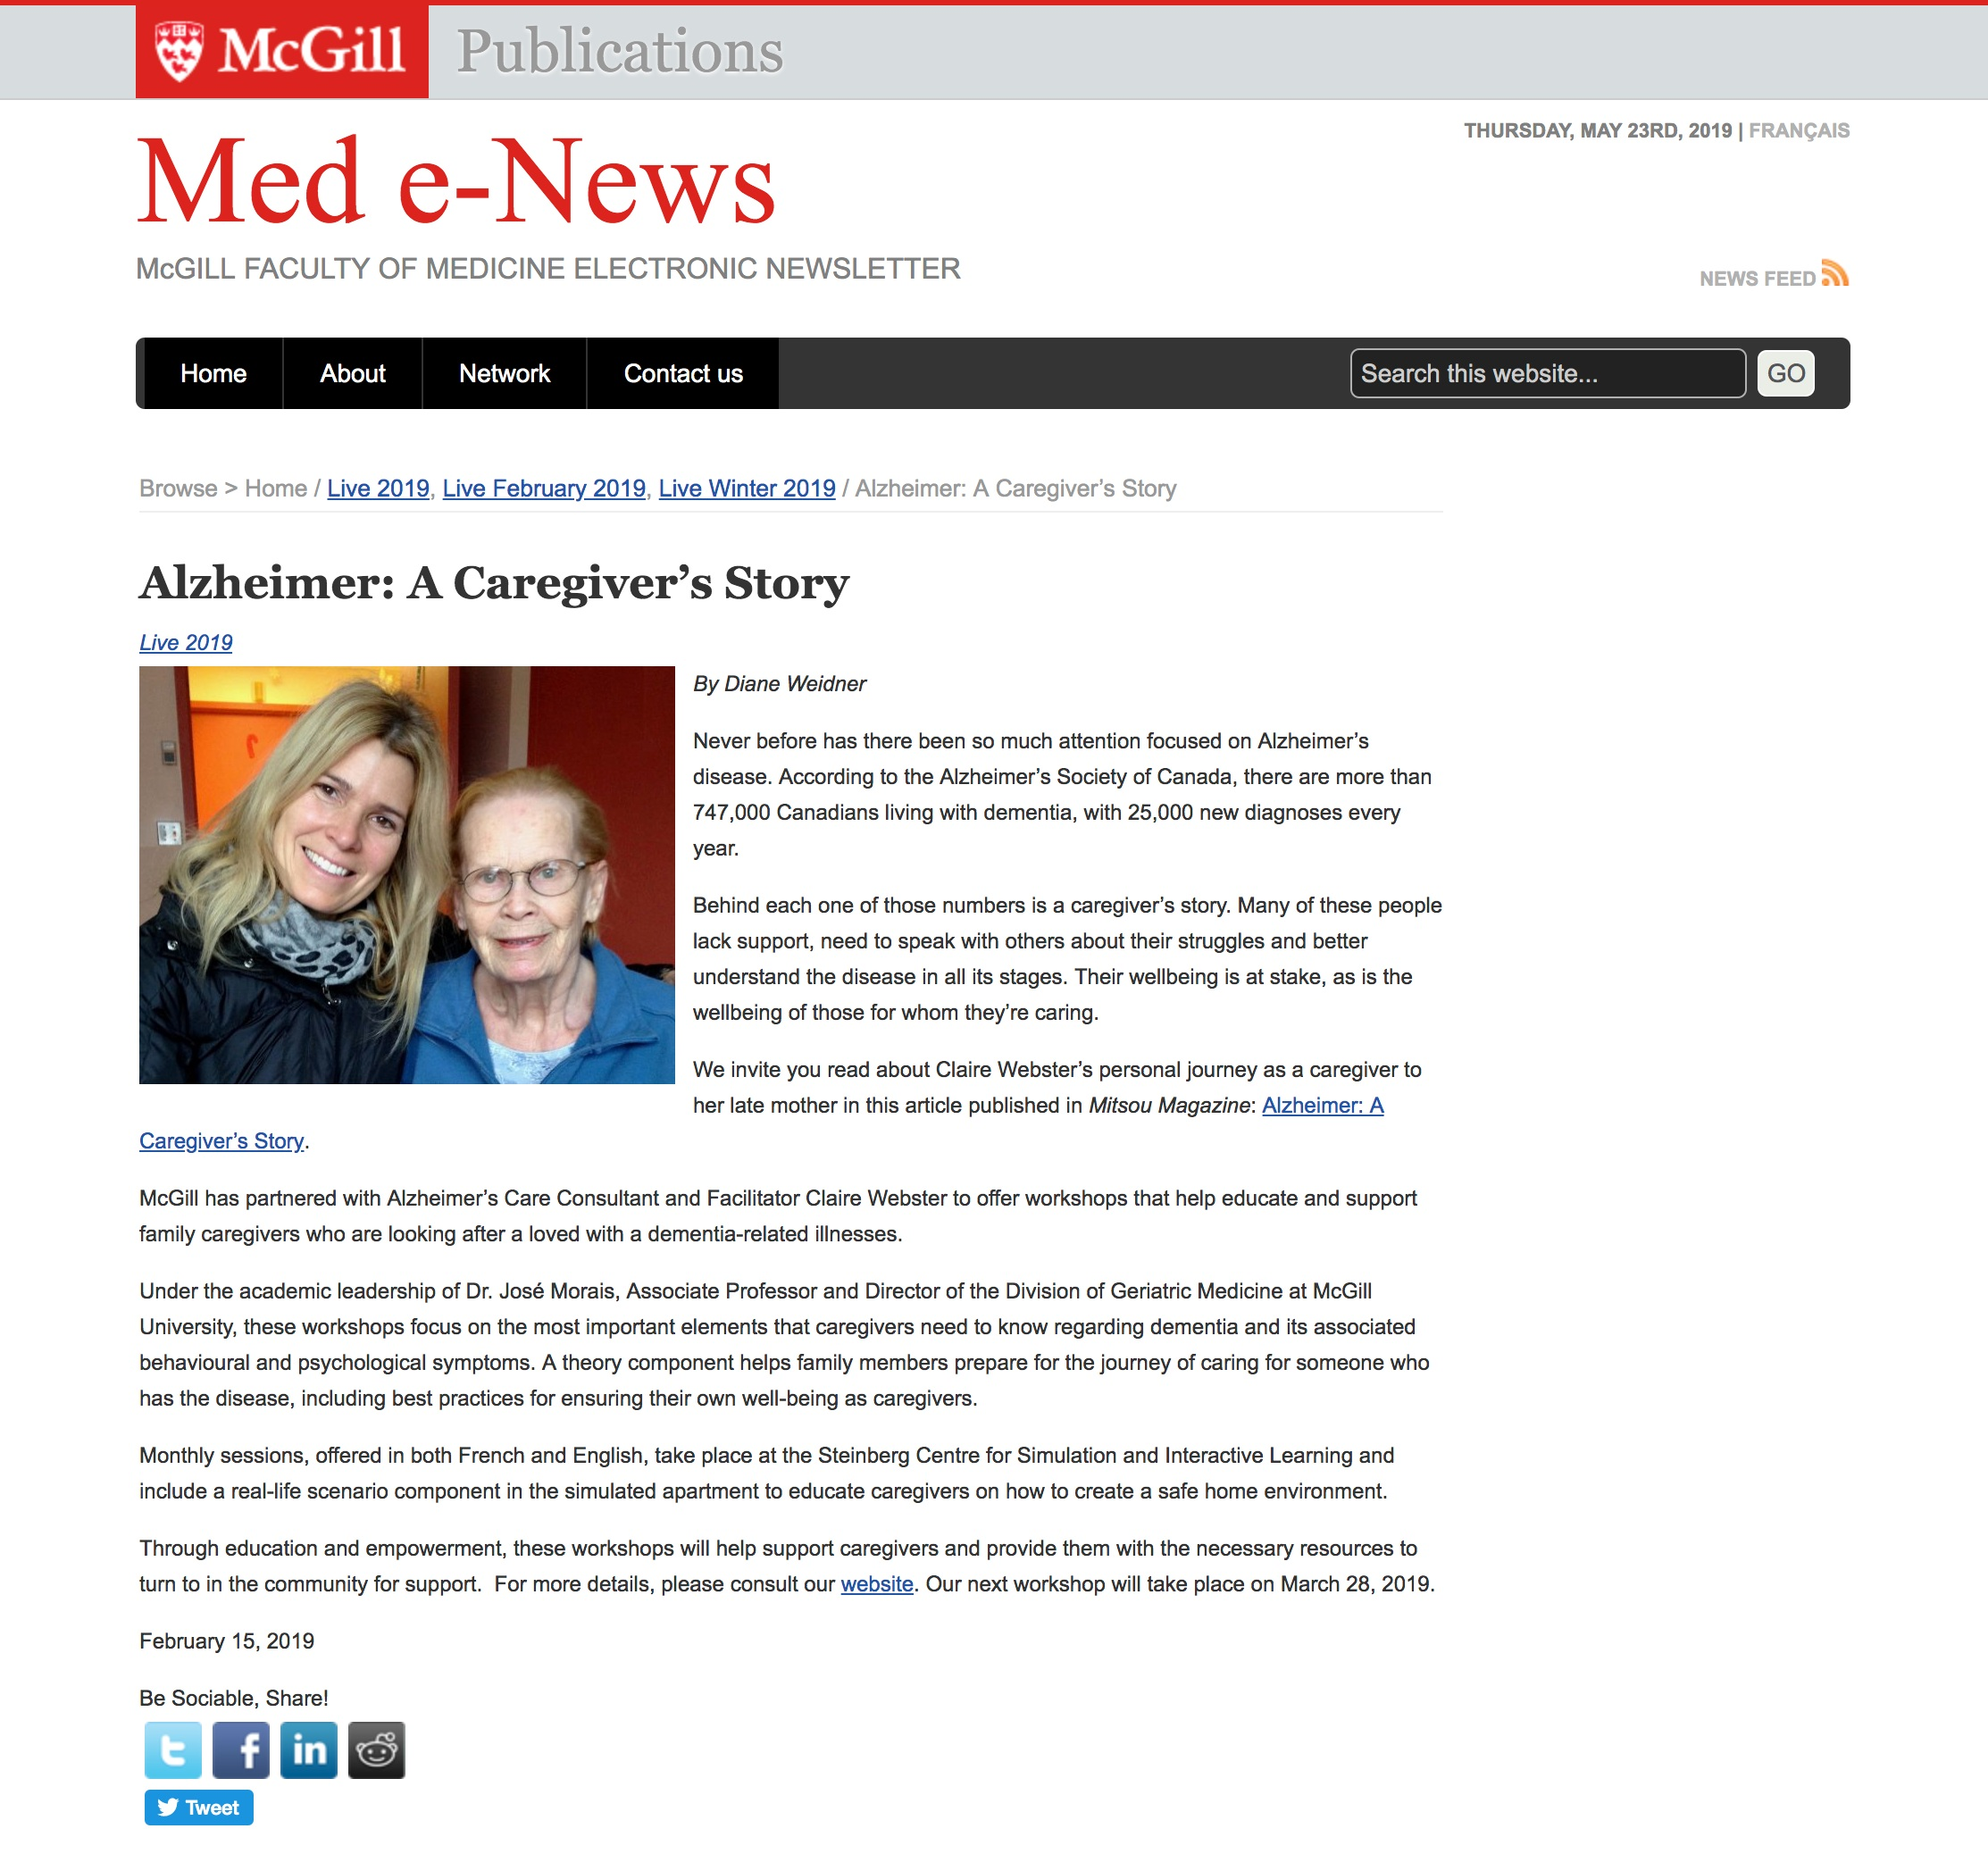 Publications McGill - Med e-News